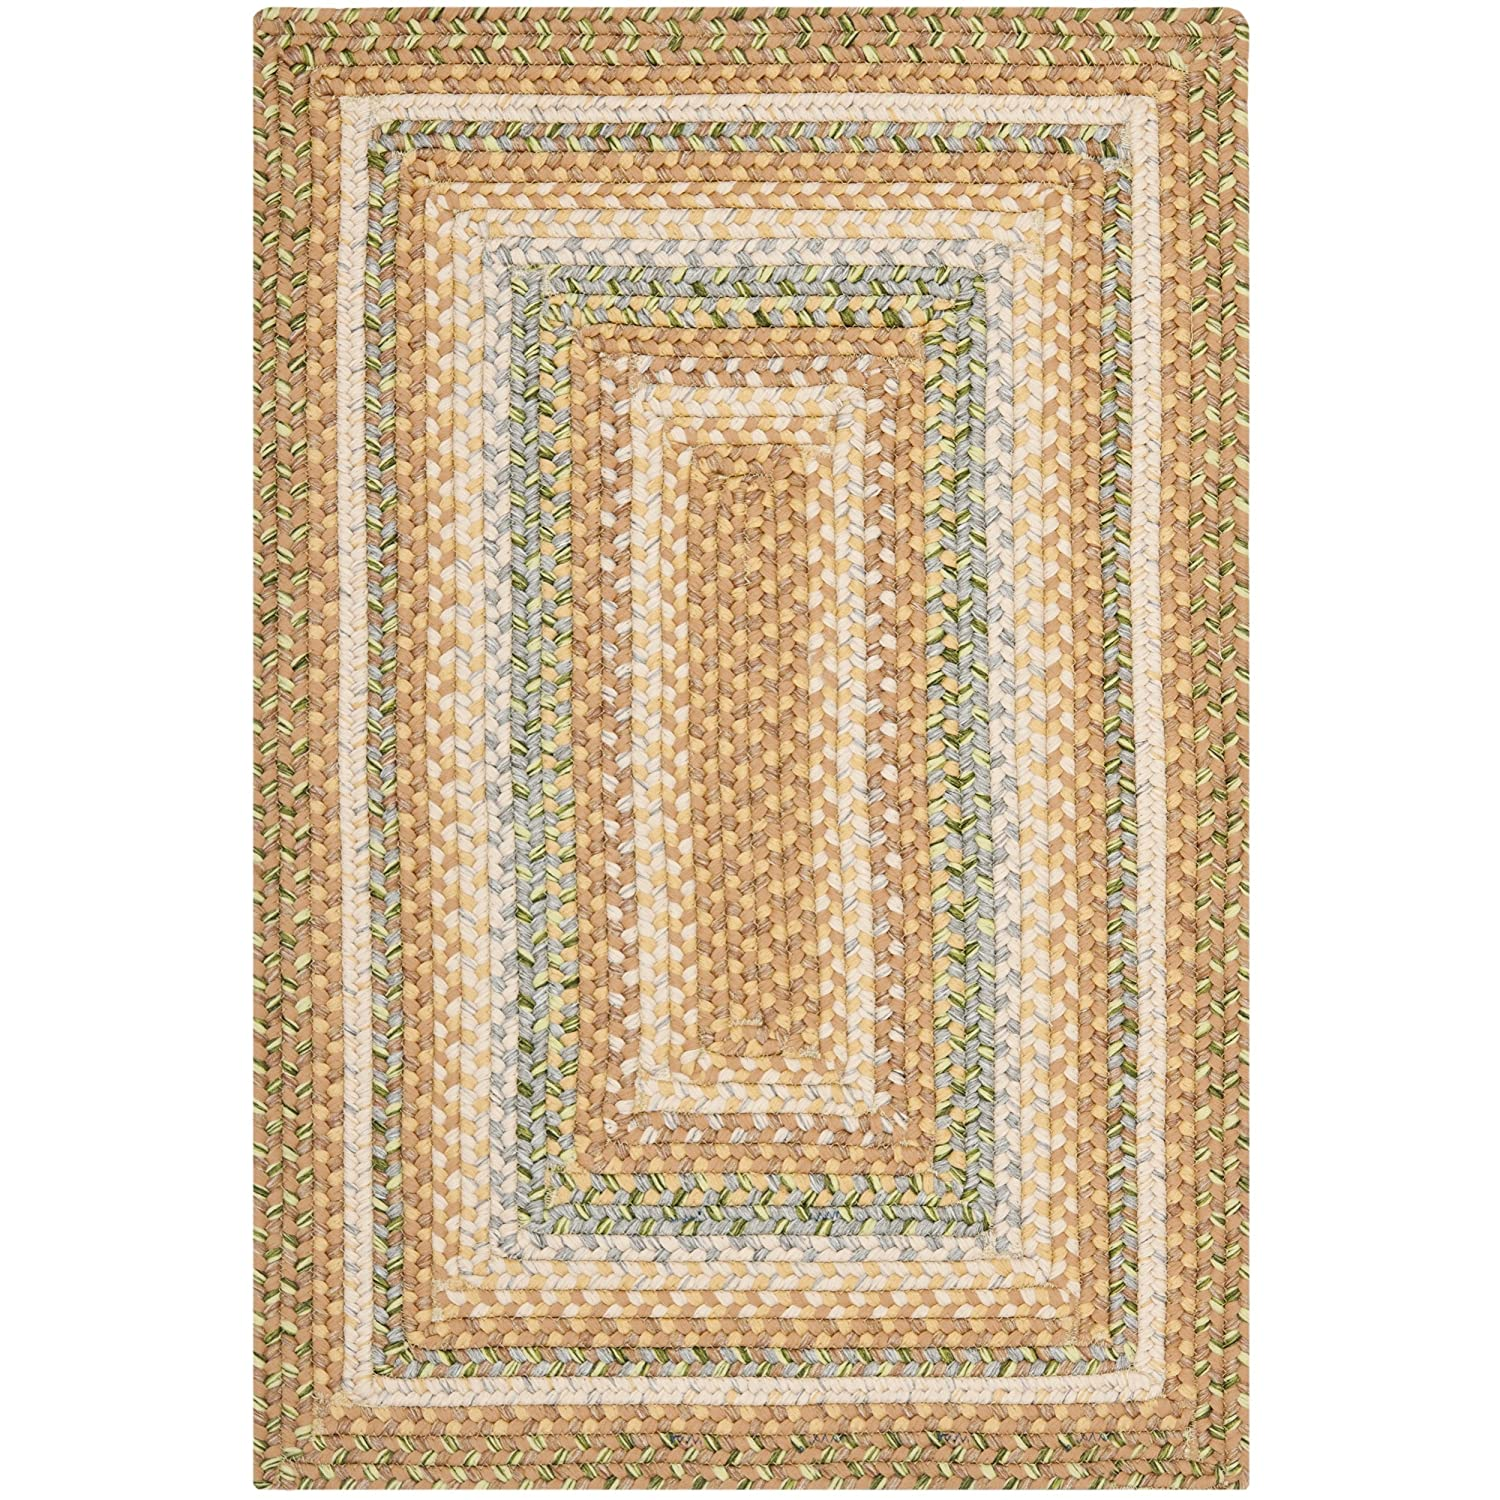 BRD314A-2 Safavieh Braided Collection BRD314A Hand Woven Tan and Multi Area Rug 2 x 3